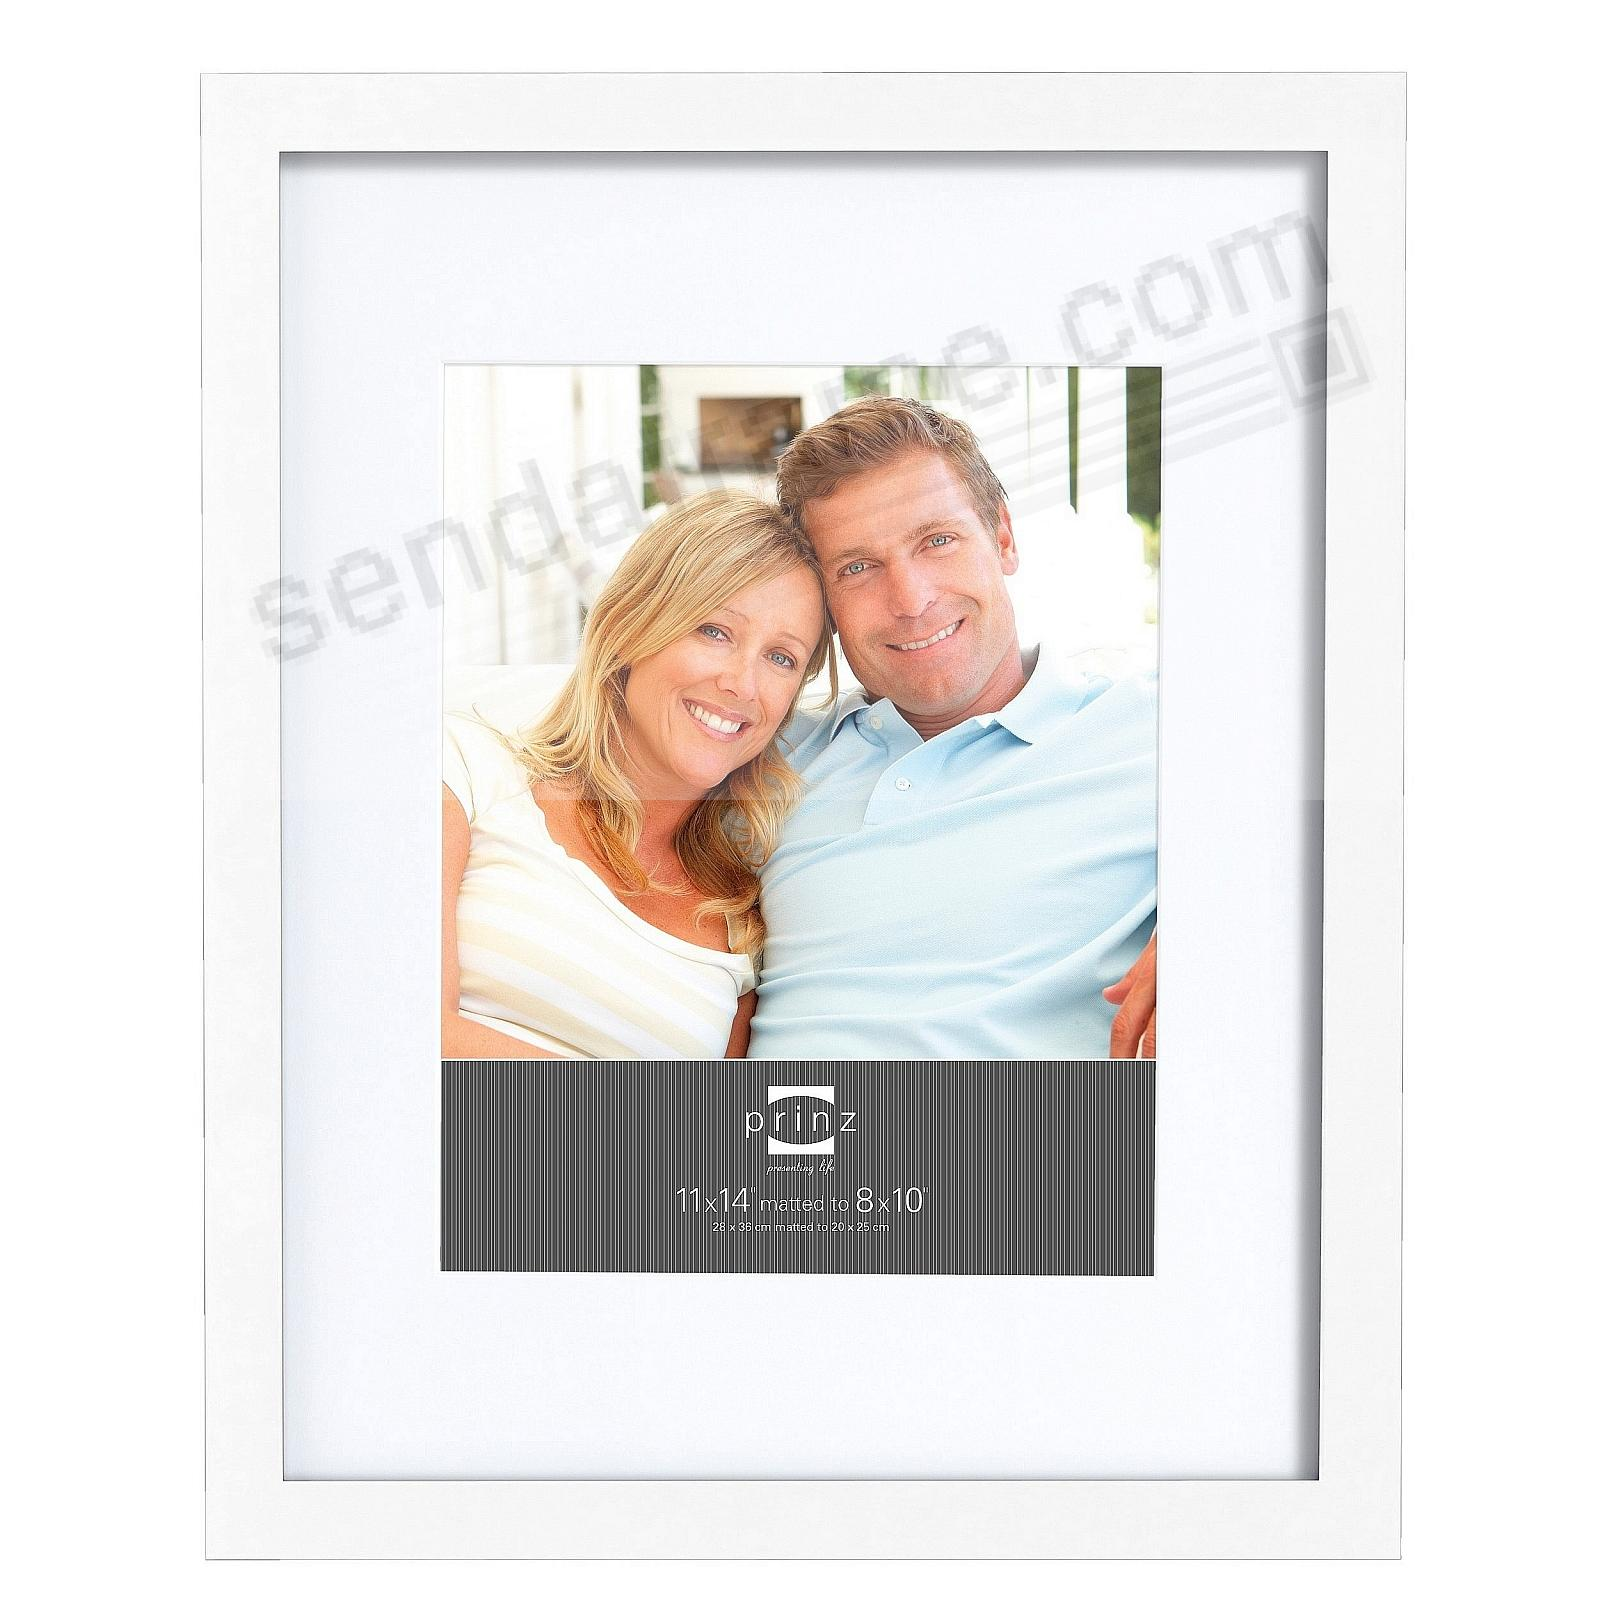 picture with openings satin collage itm photo frame mat mats arttoframes black